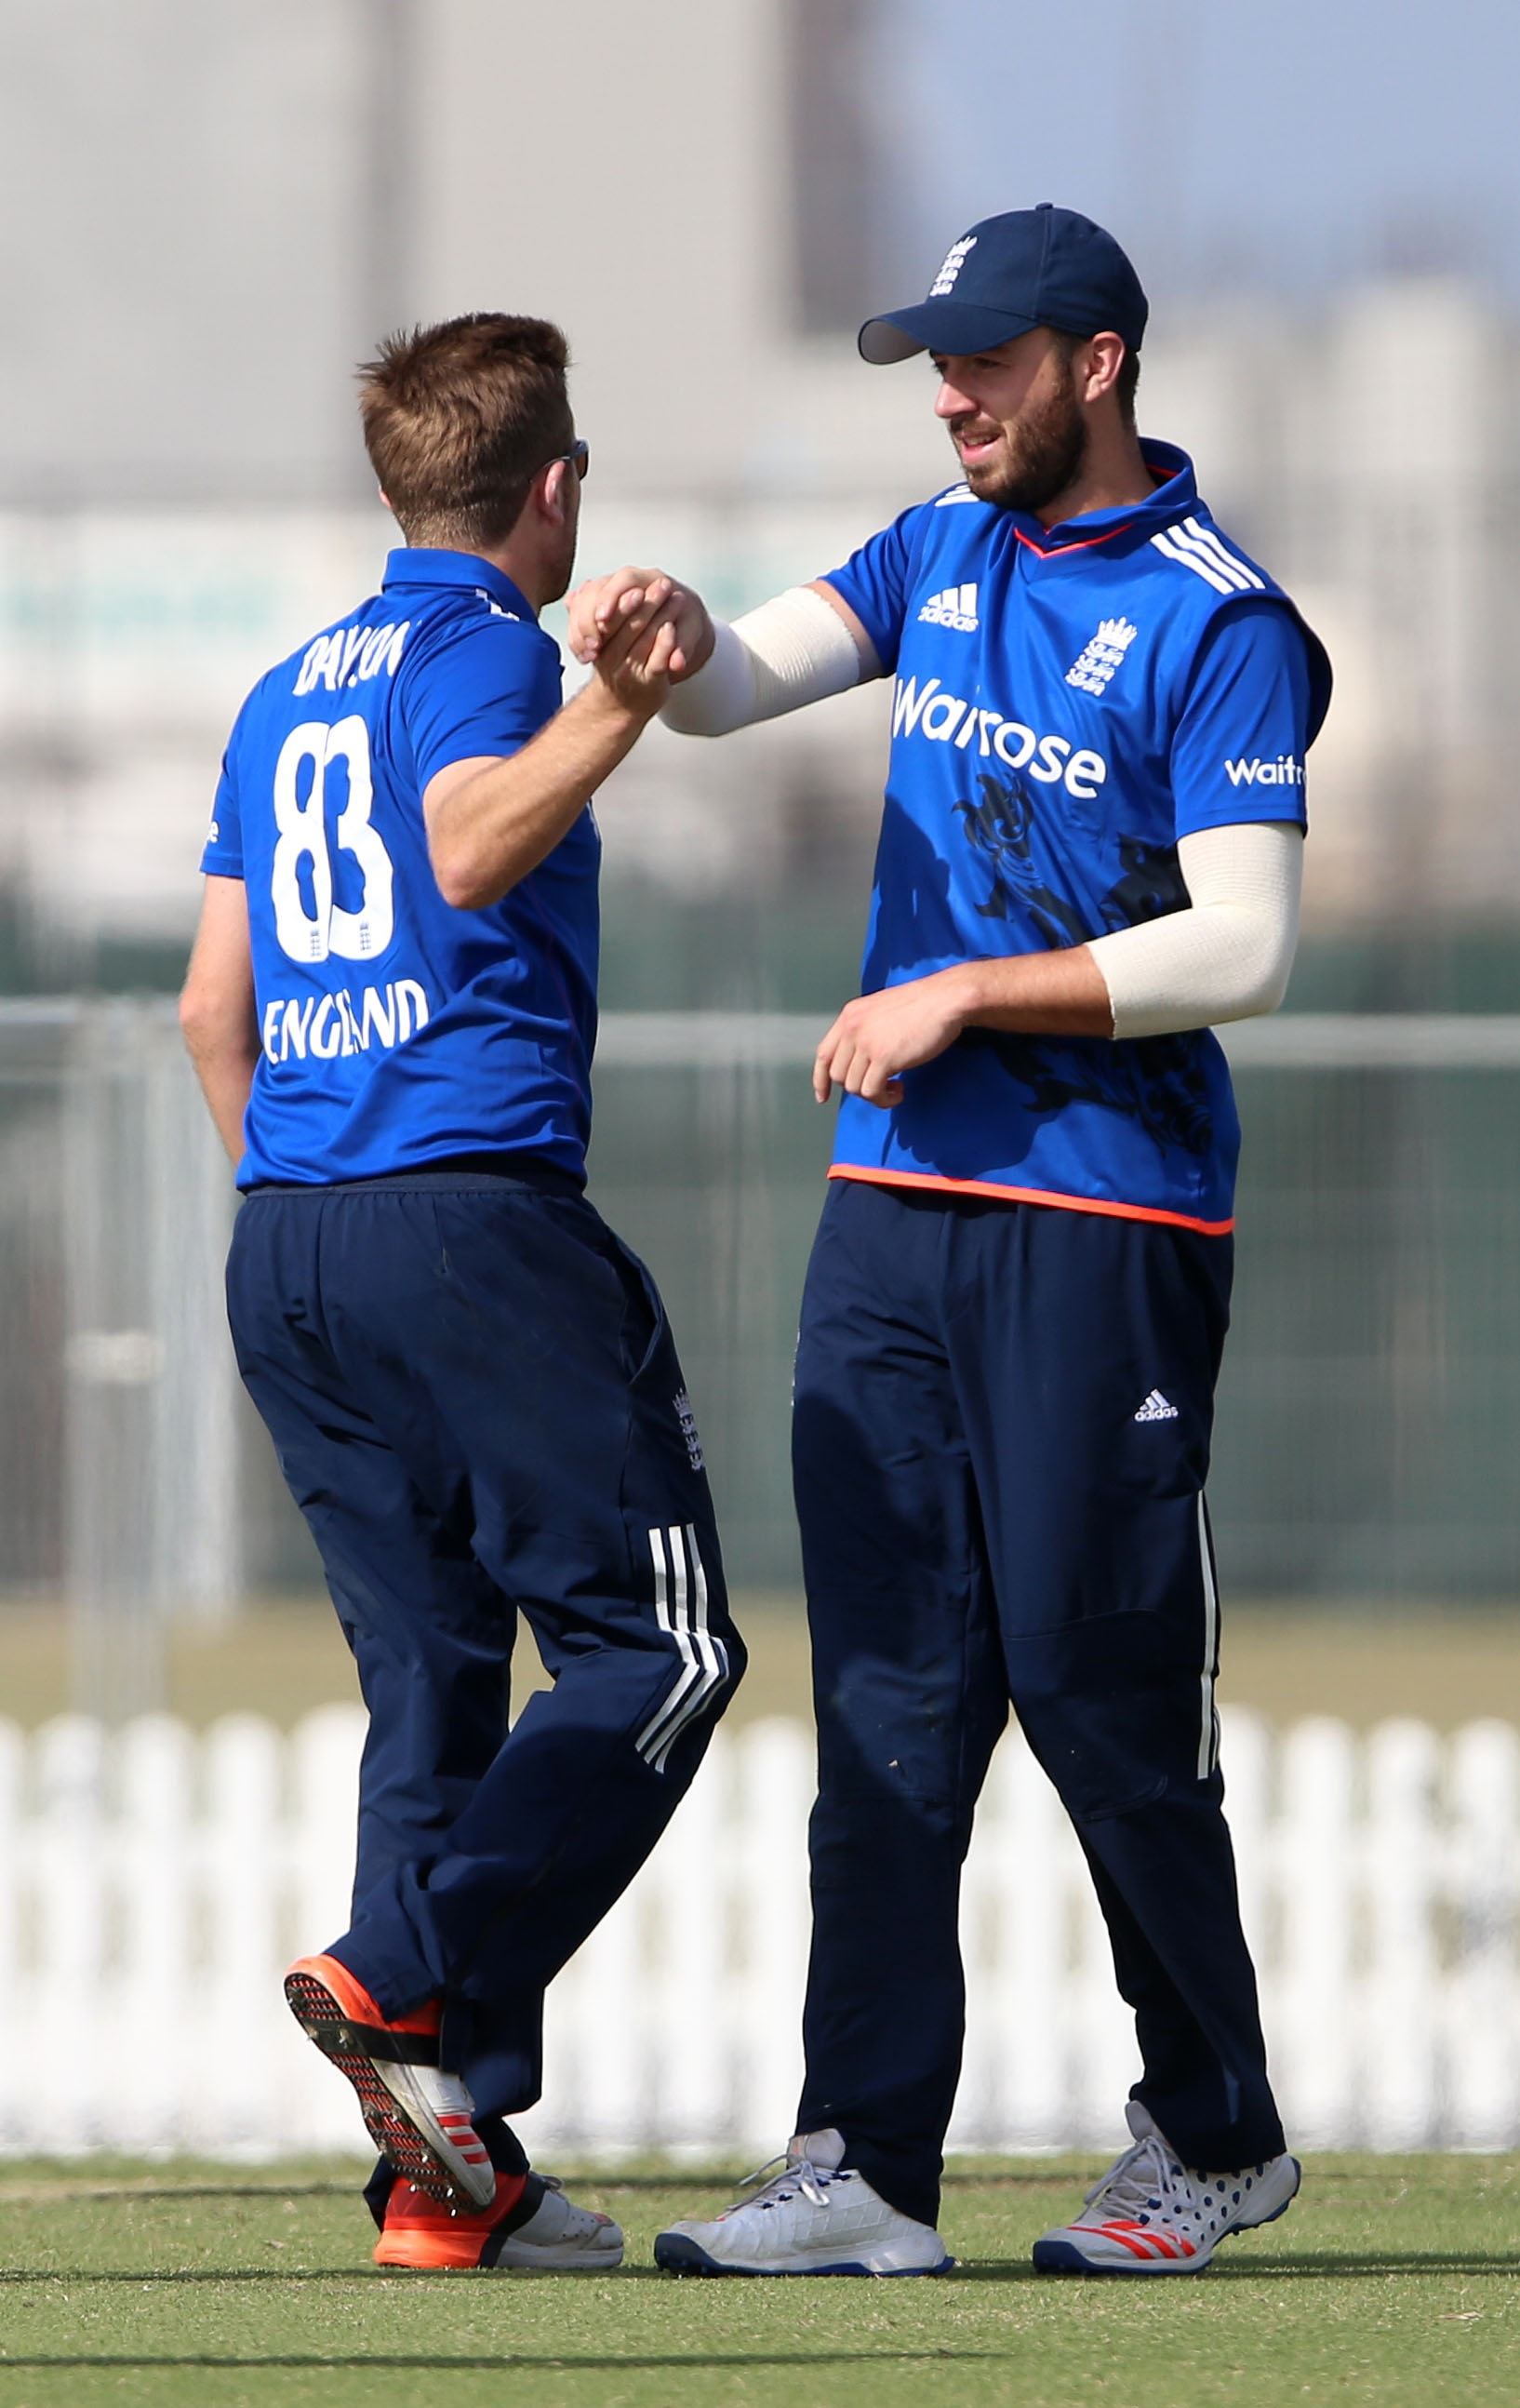 CRICKET: Dawson and Vince impress in England win